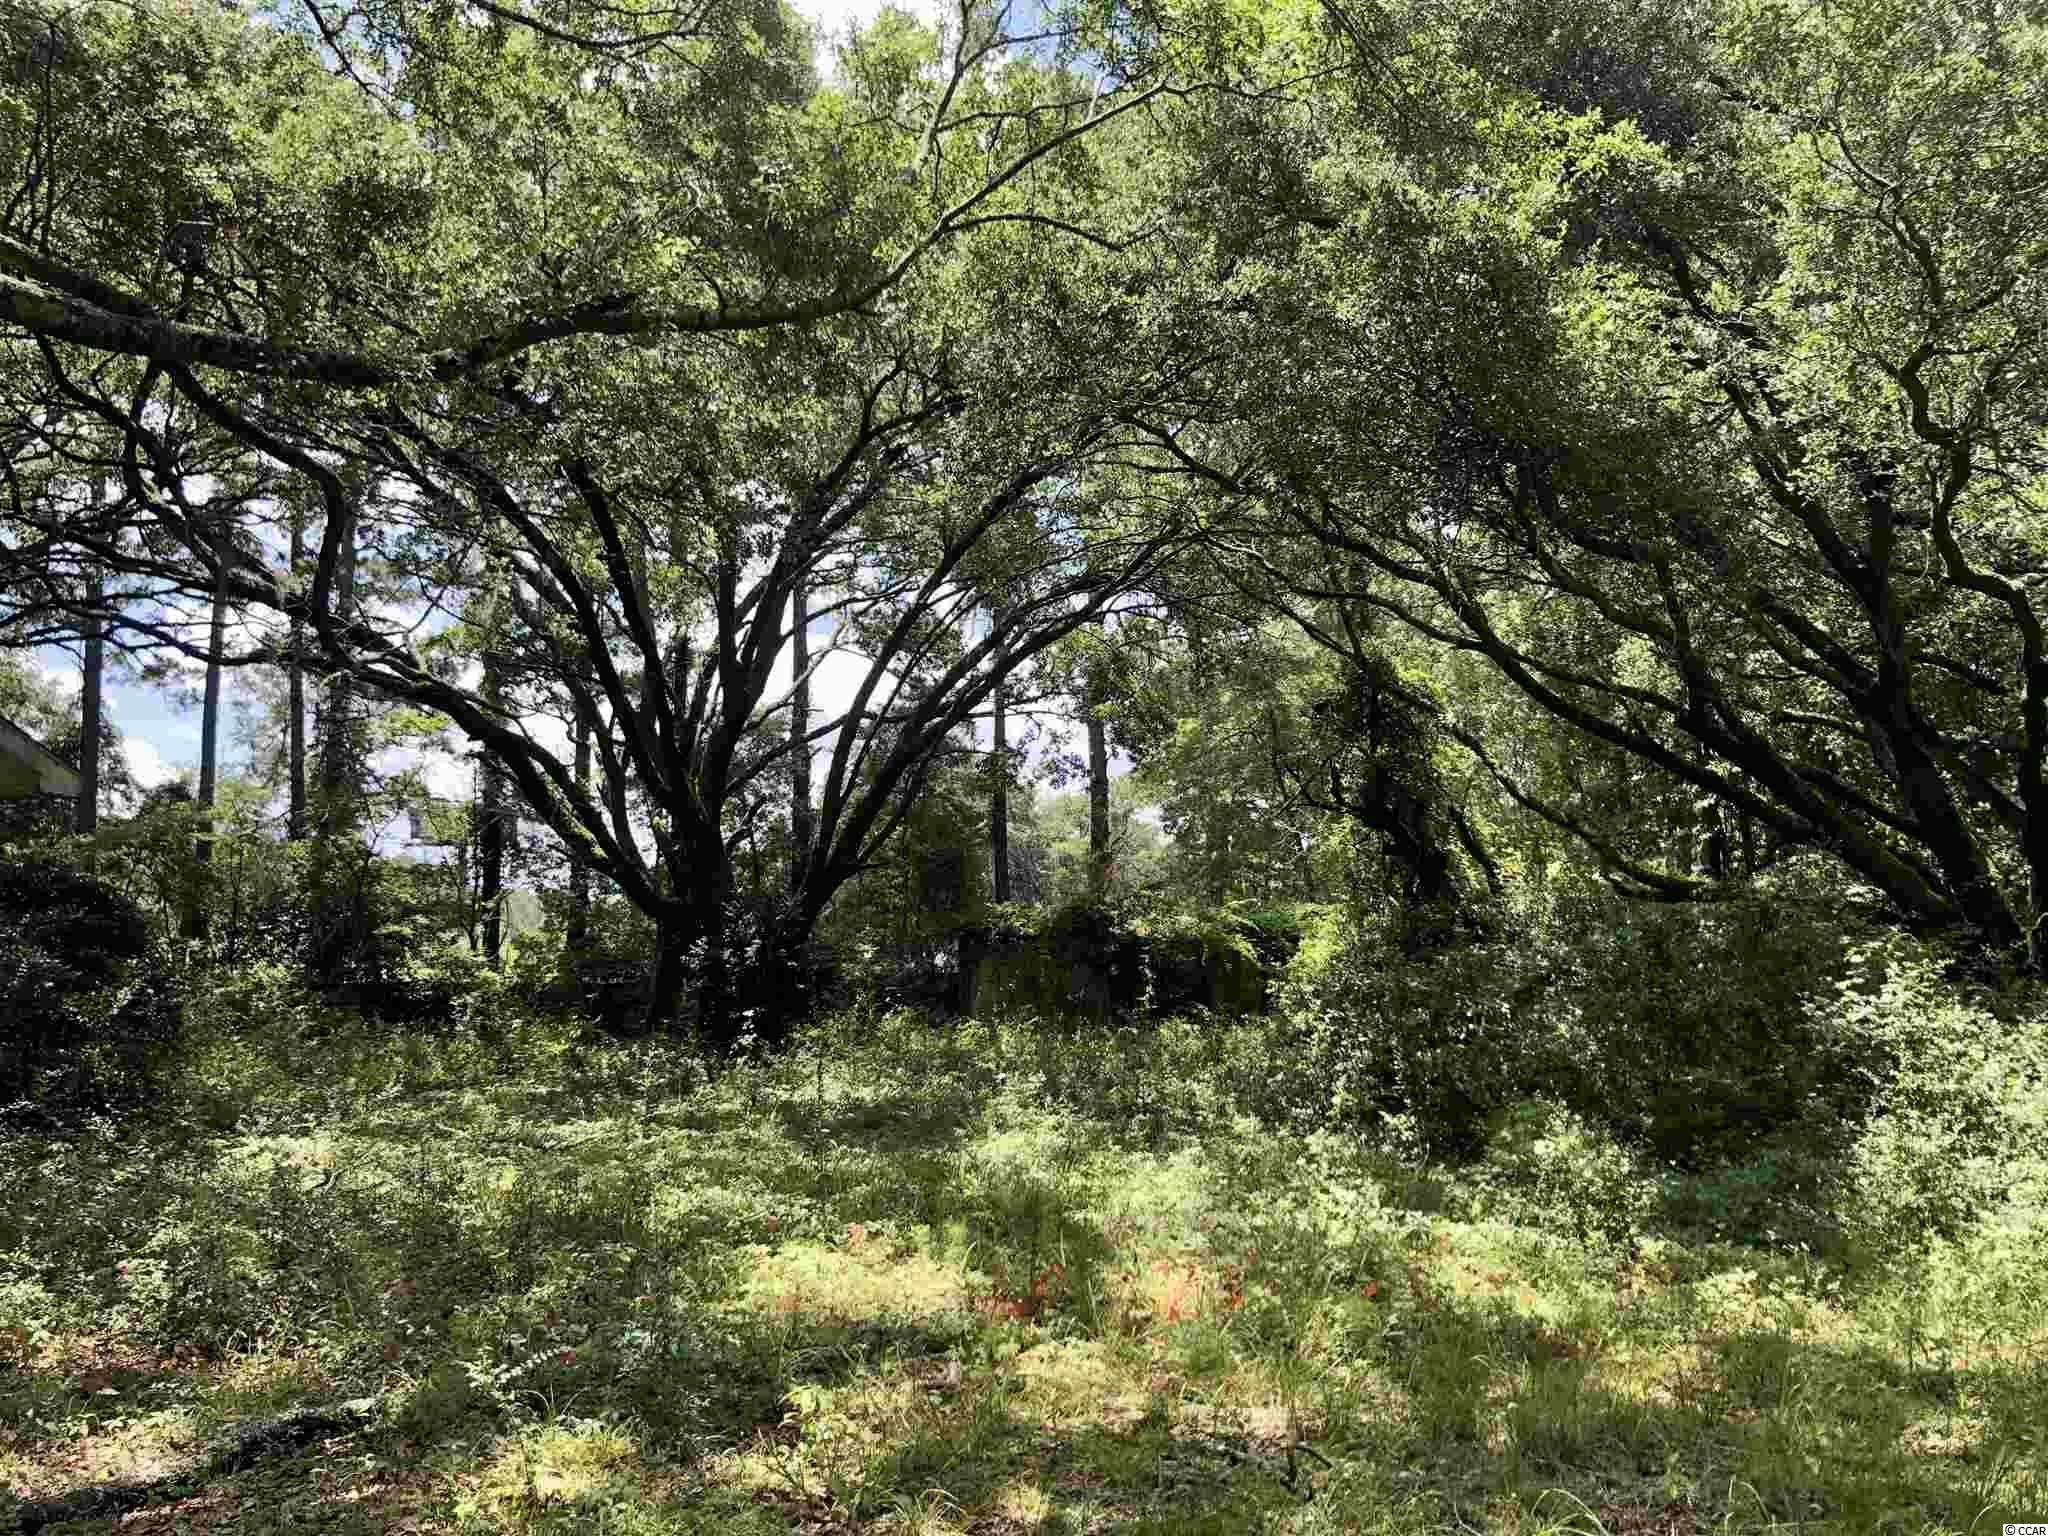 7 +/- Acreage available 14 miles South of Georgetown ready for someone to make it theirs. Over 7 acres with 330ft of road frontage on Hwy 17S. Septic tank and well are onsite. Buyer is responsible for all inspections. Billboard on site is rented yearly and paid to the owner. Selling agent is related to the owner.